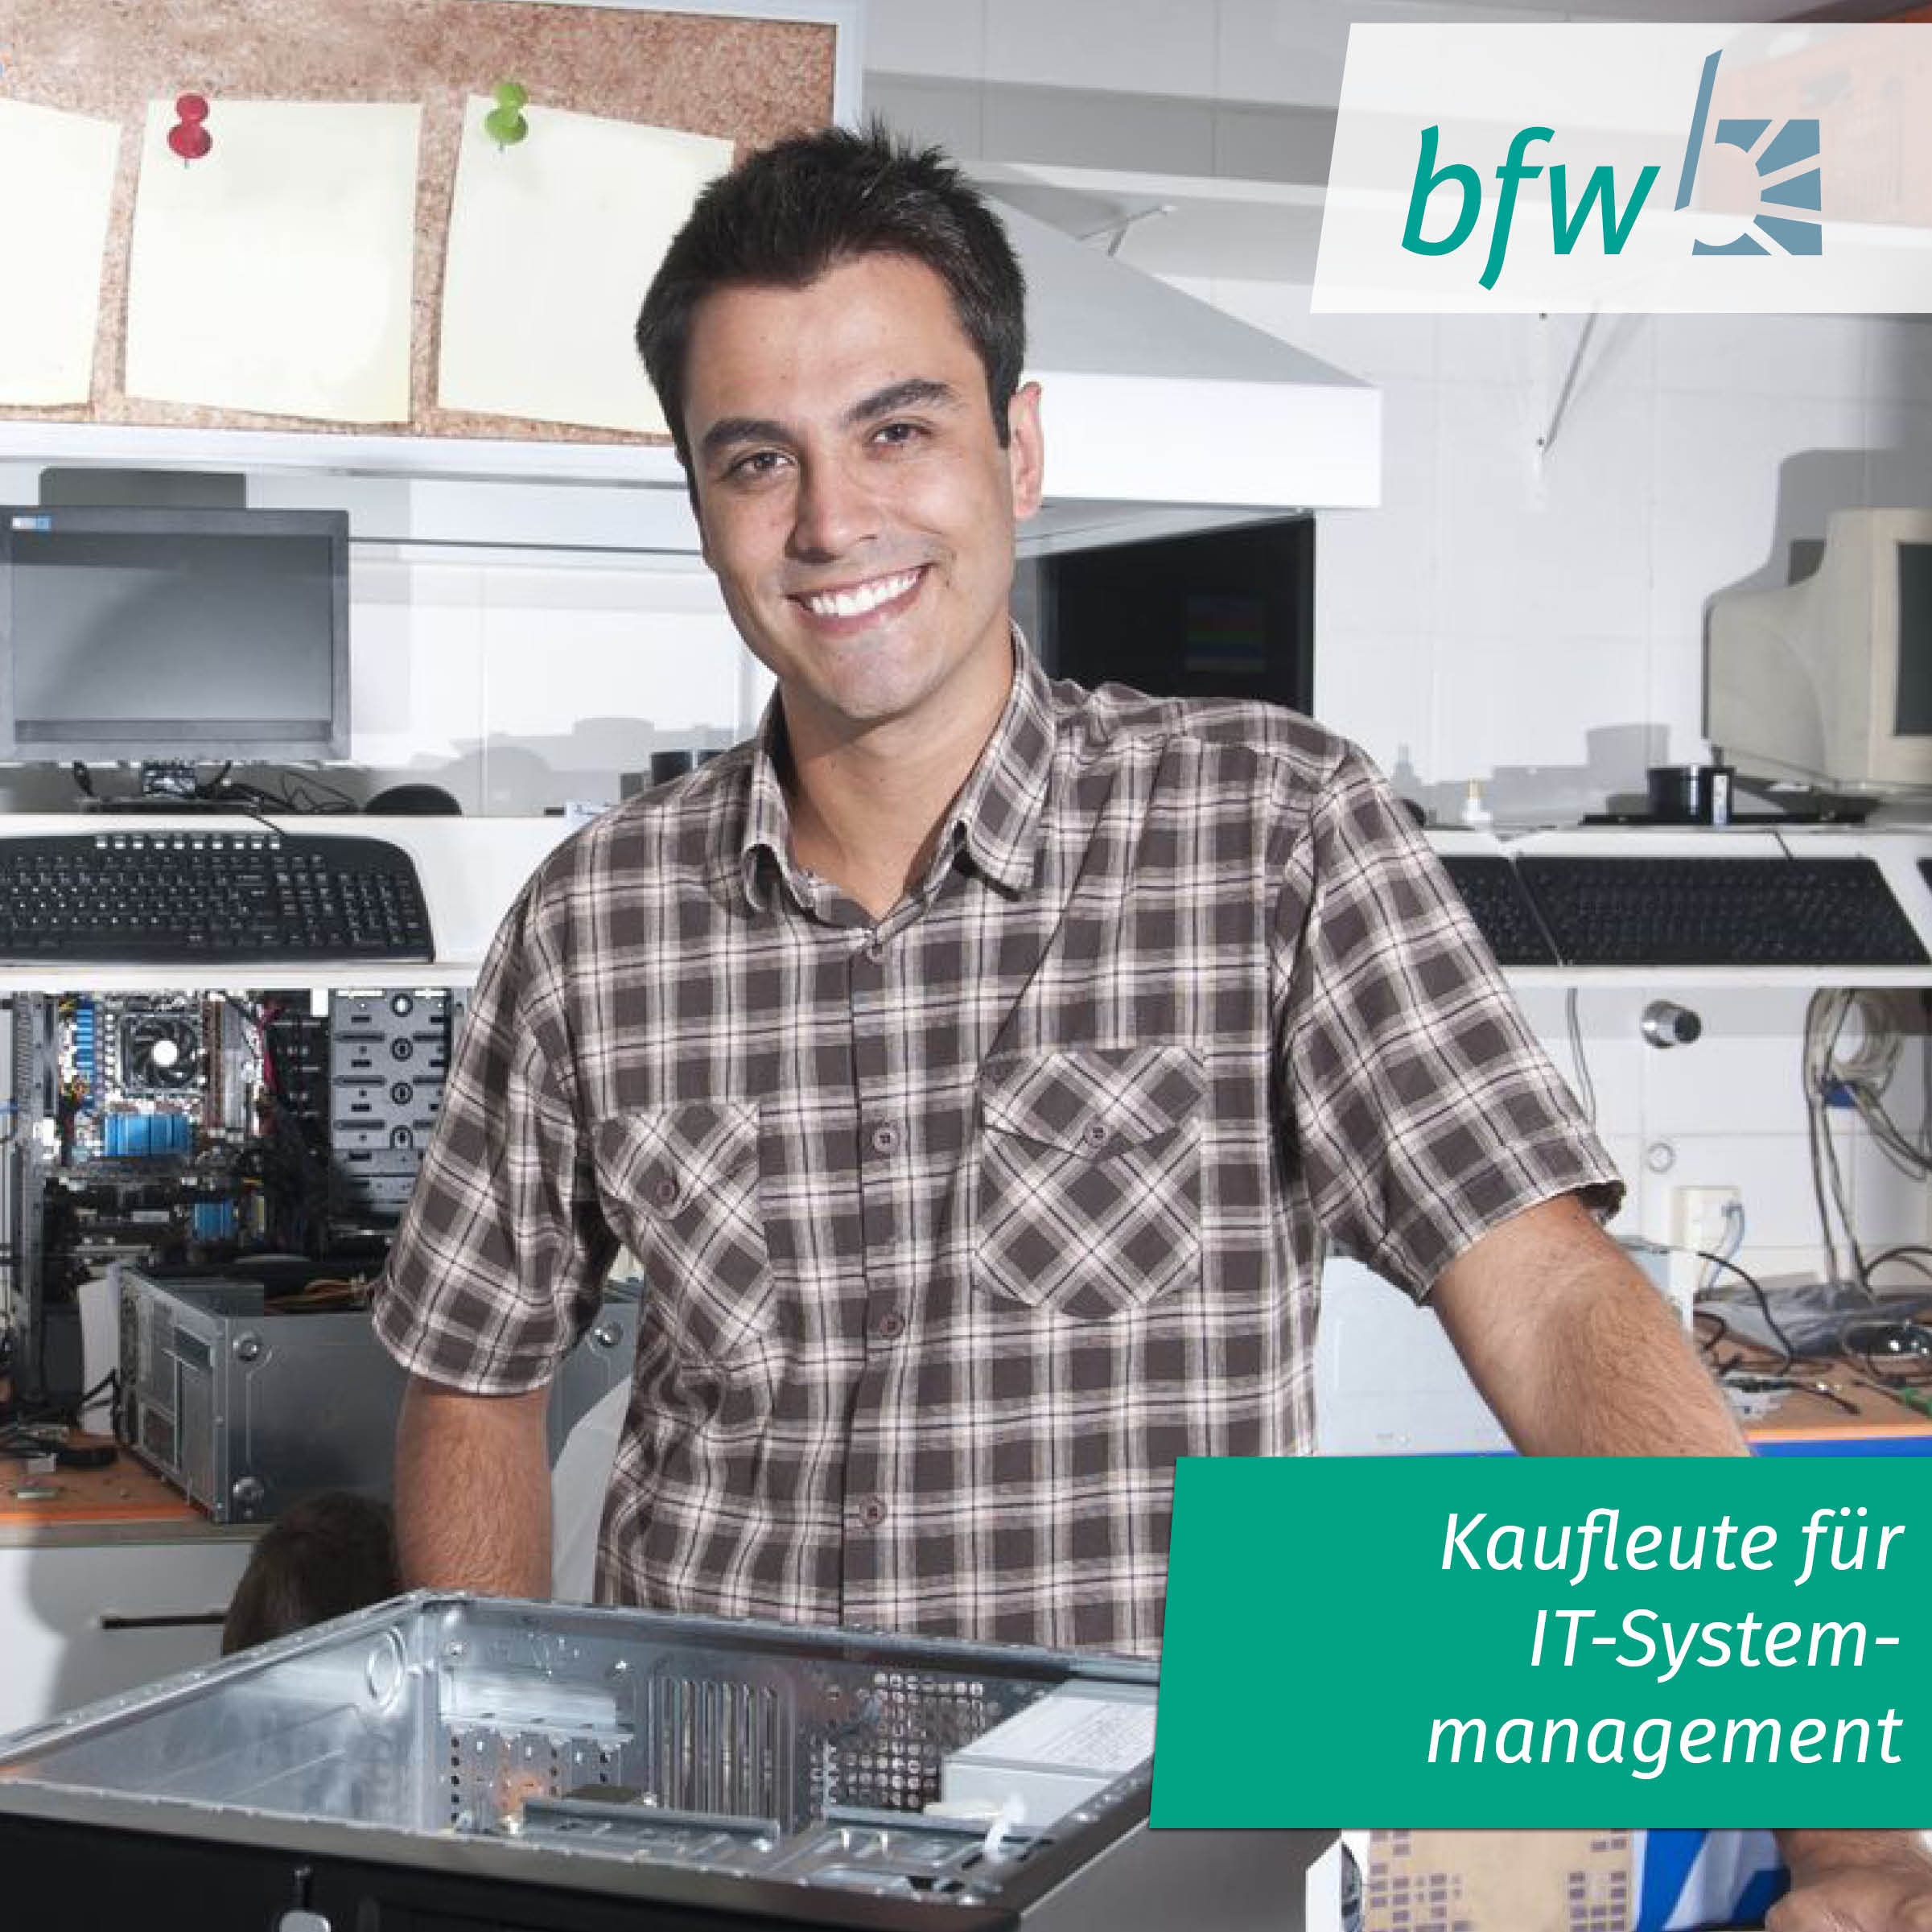 Kaufleute für IT-Systemmanagement Image